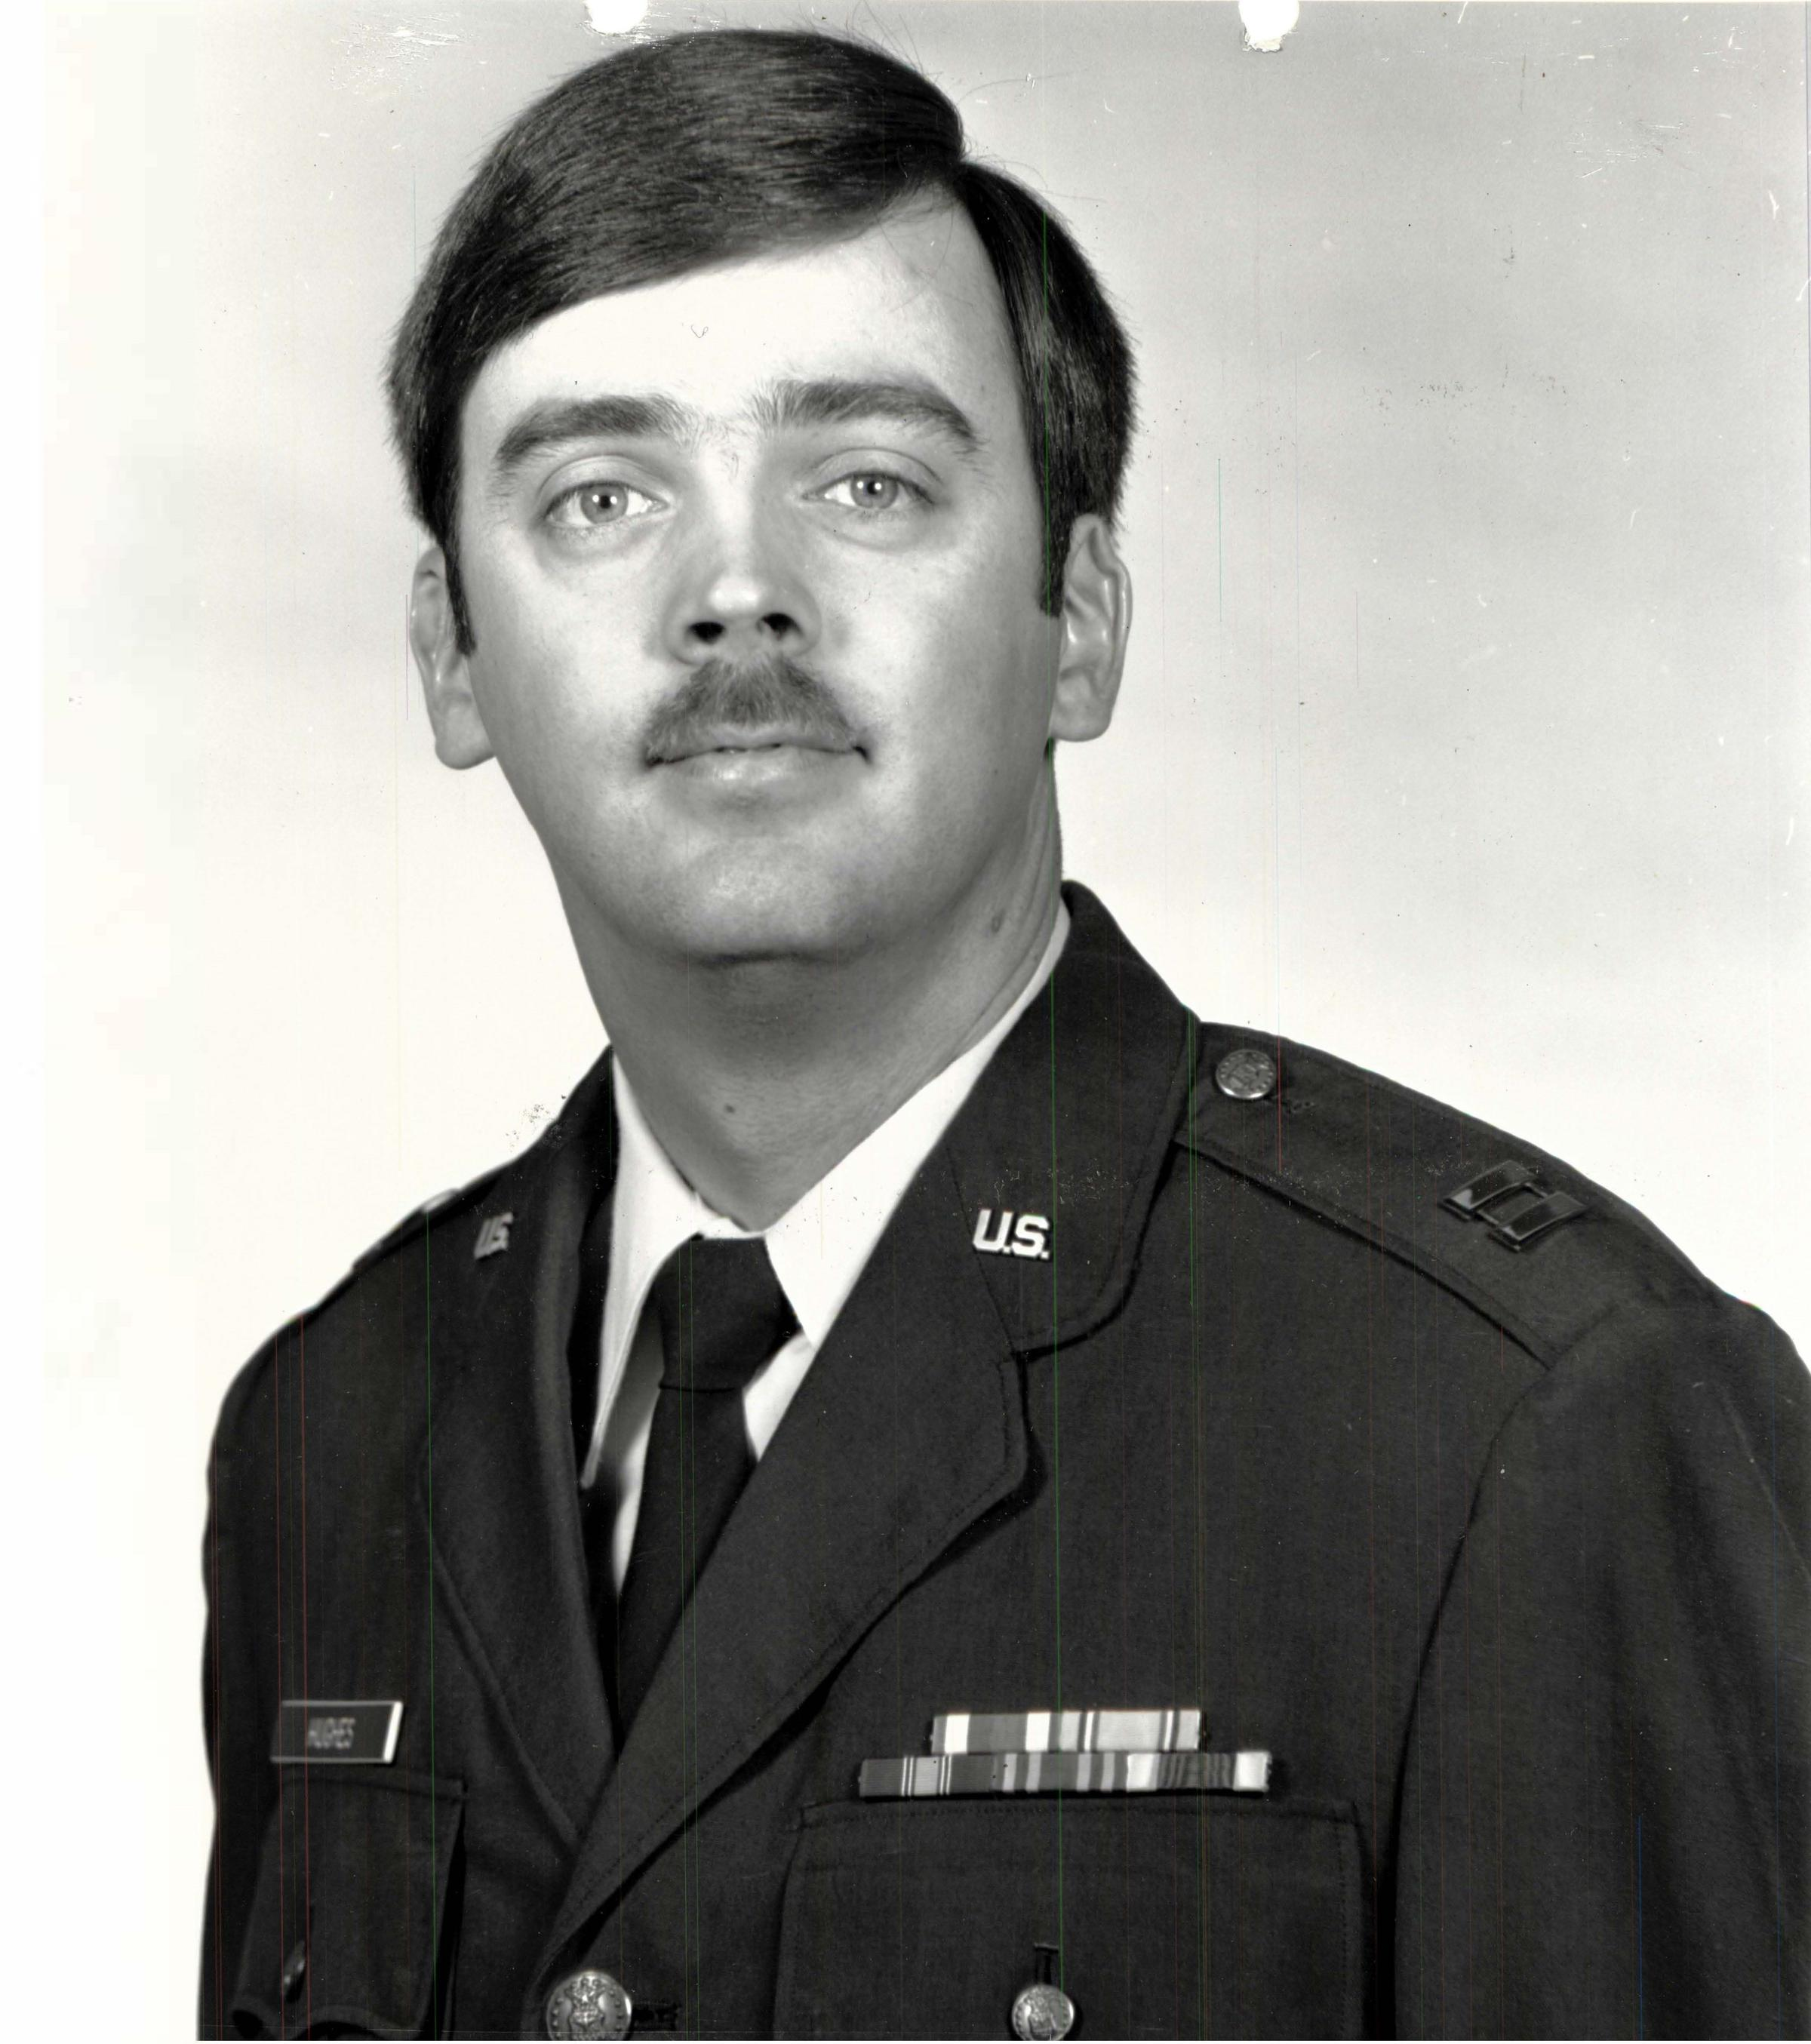 william howard hughes jr was formally declared a deserter by the air force